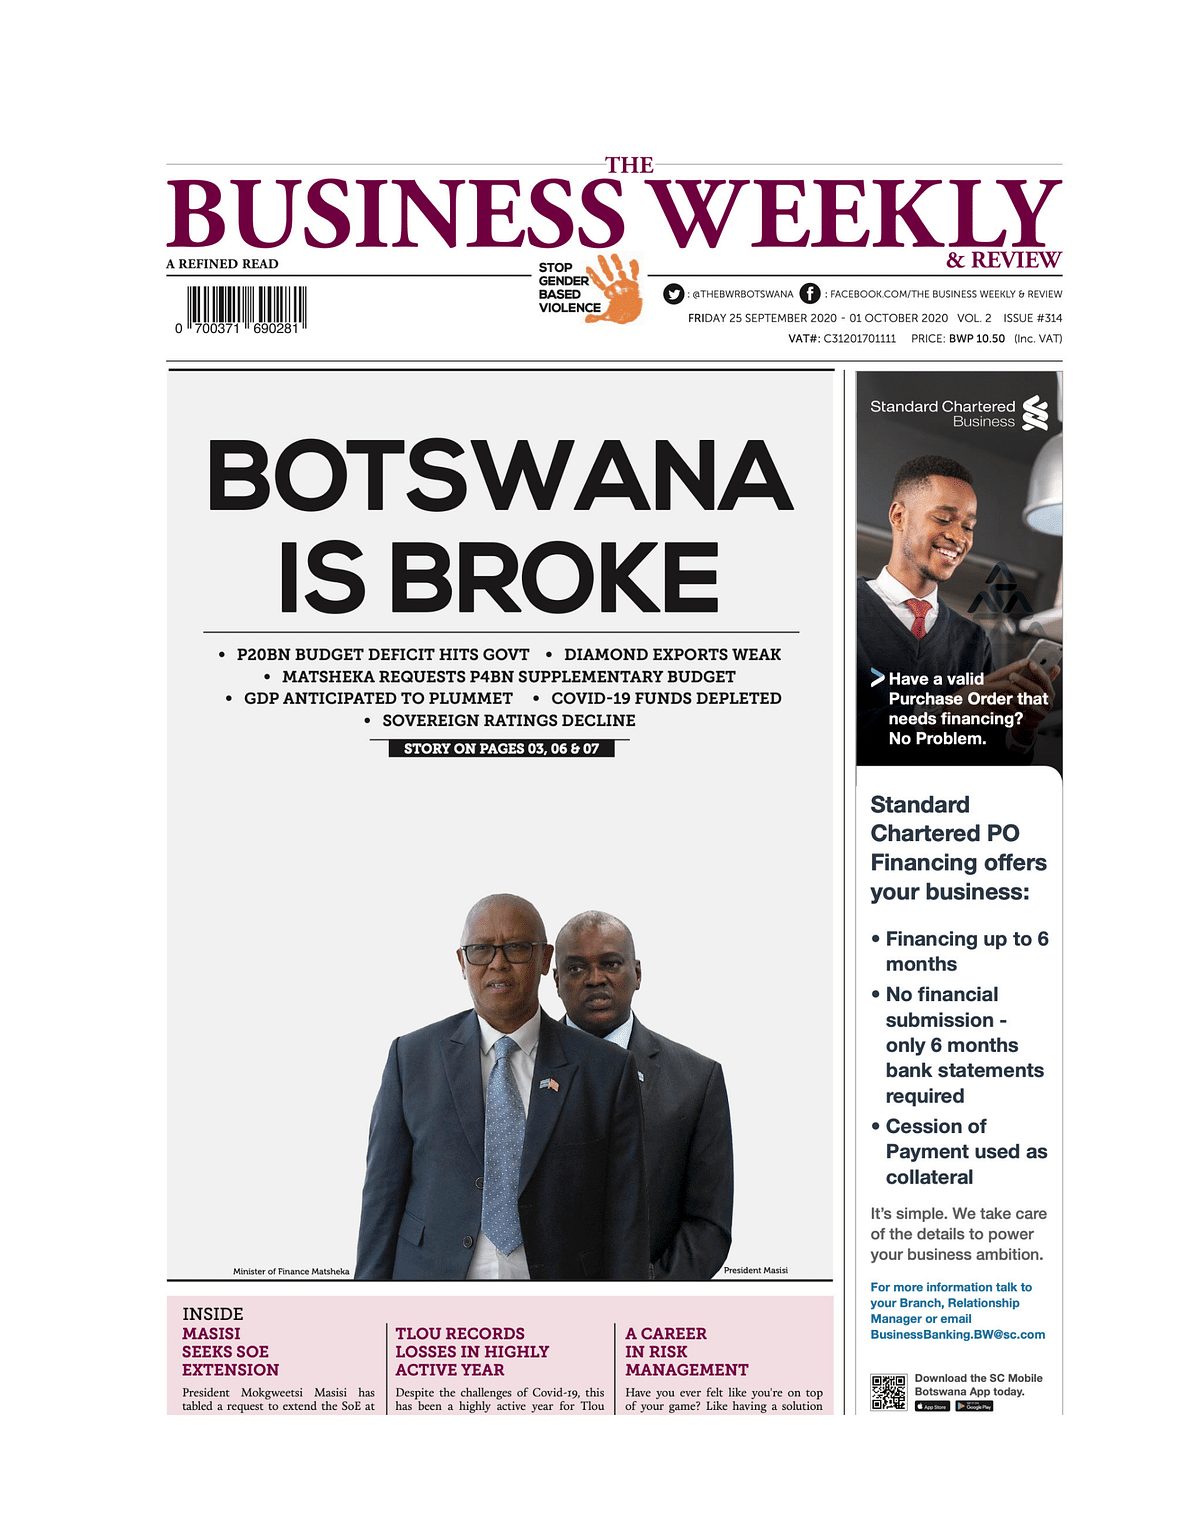 The Business Weekly & Review 25 September 2020